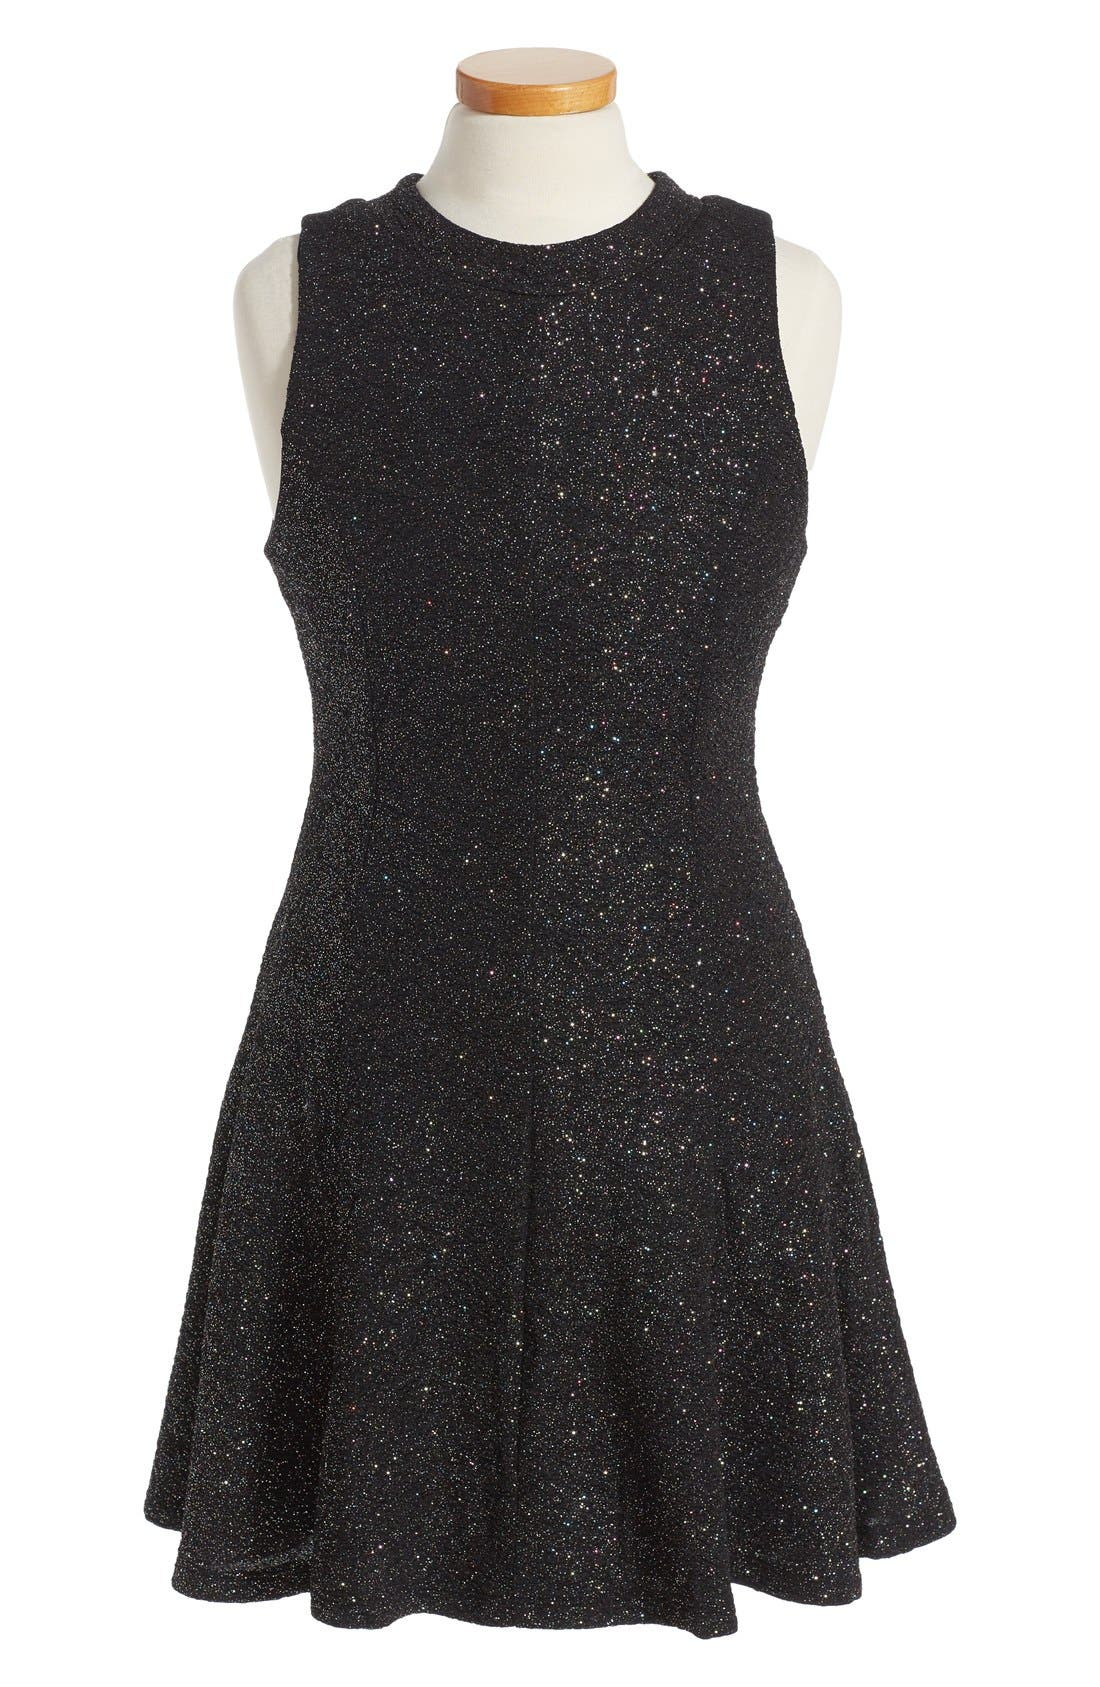 Alternate Image 1 Selected - Zunie Shimmer Swing Dress (Big Girls)